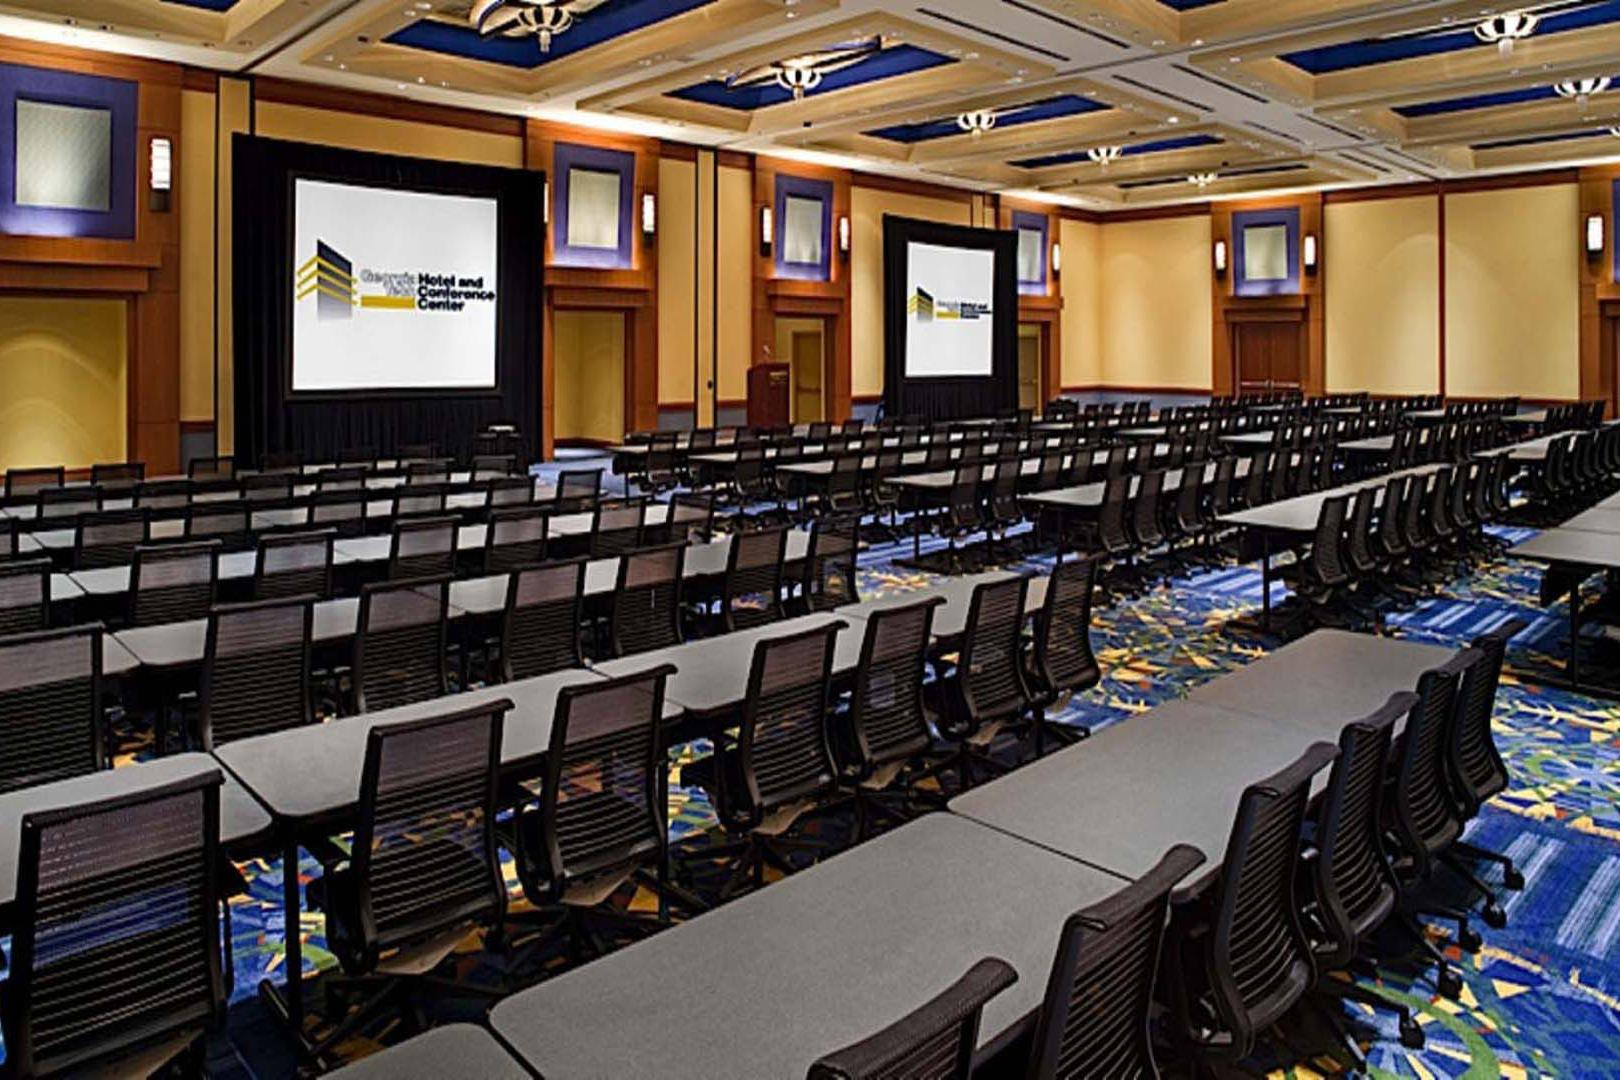 space at Georgia Tech Hotel and Conference Center